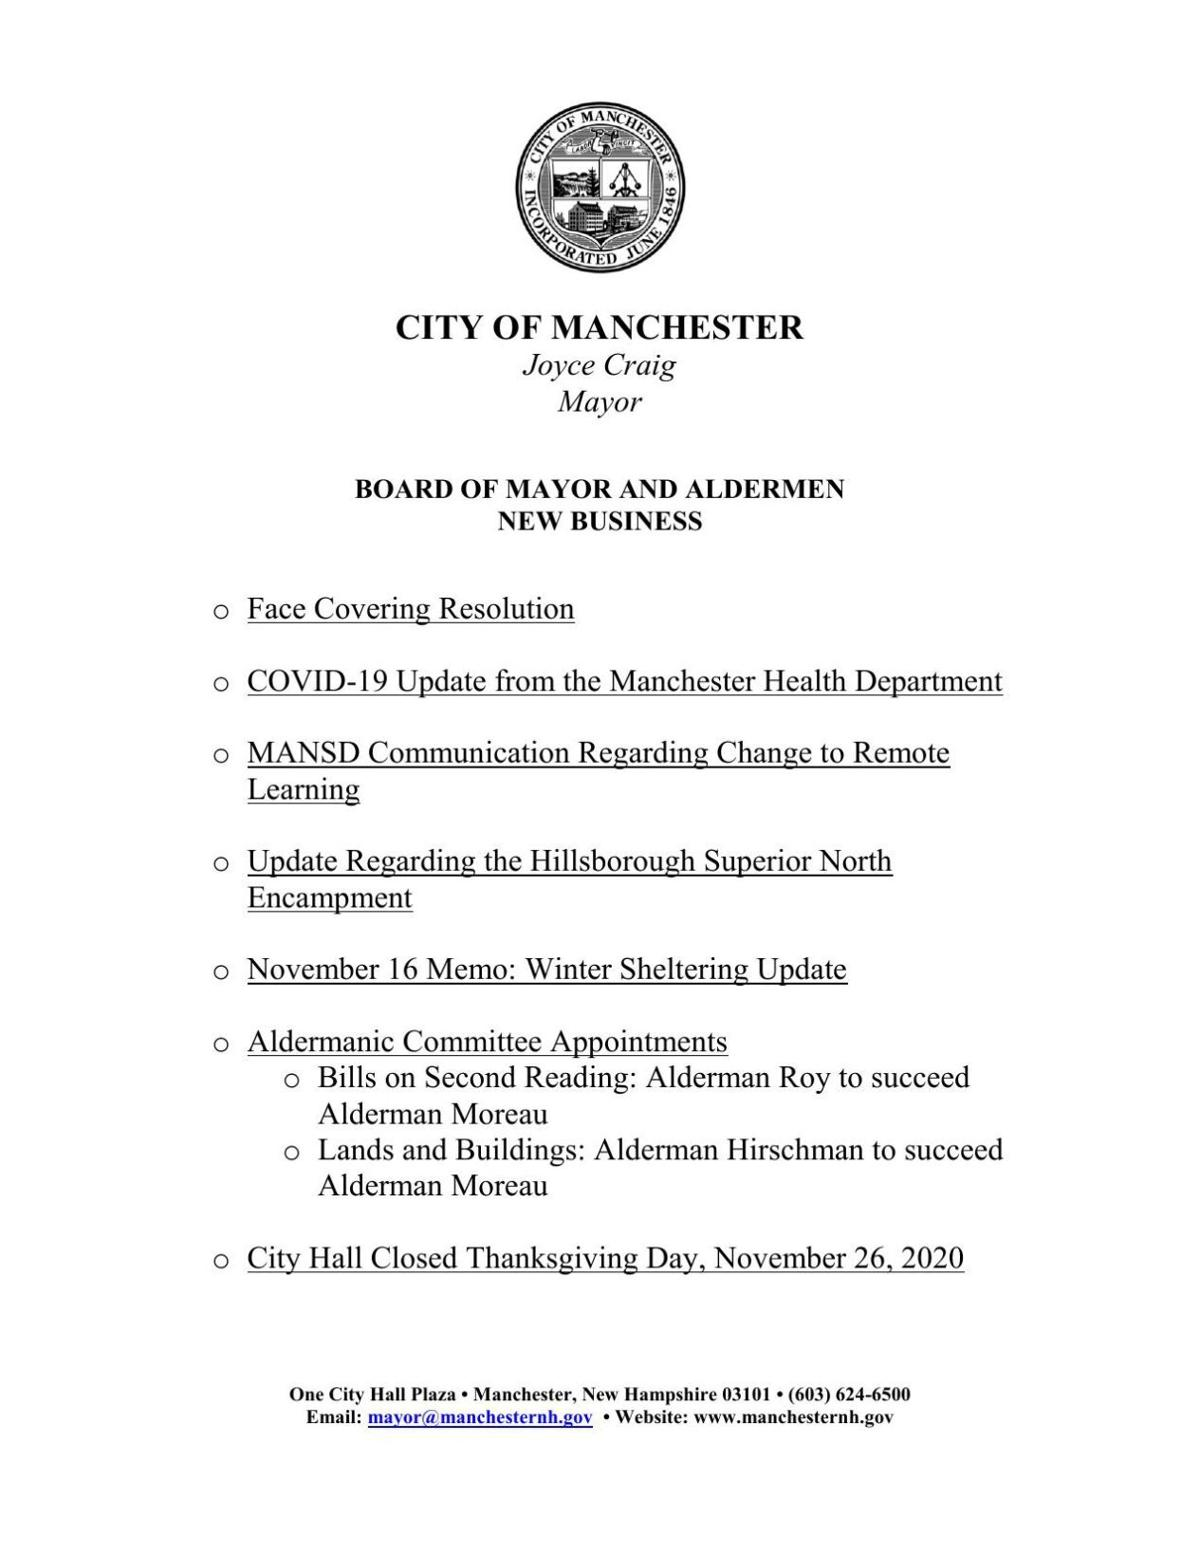 Mayor's statements on homelessness, masks